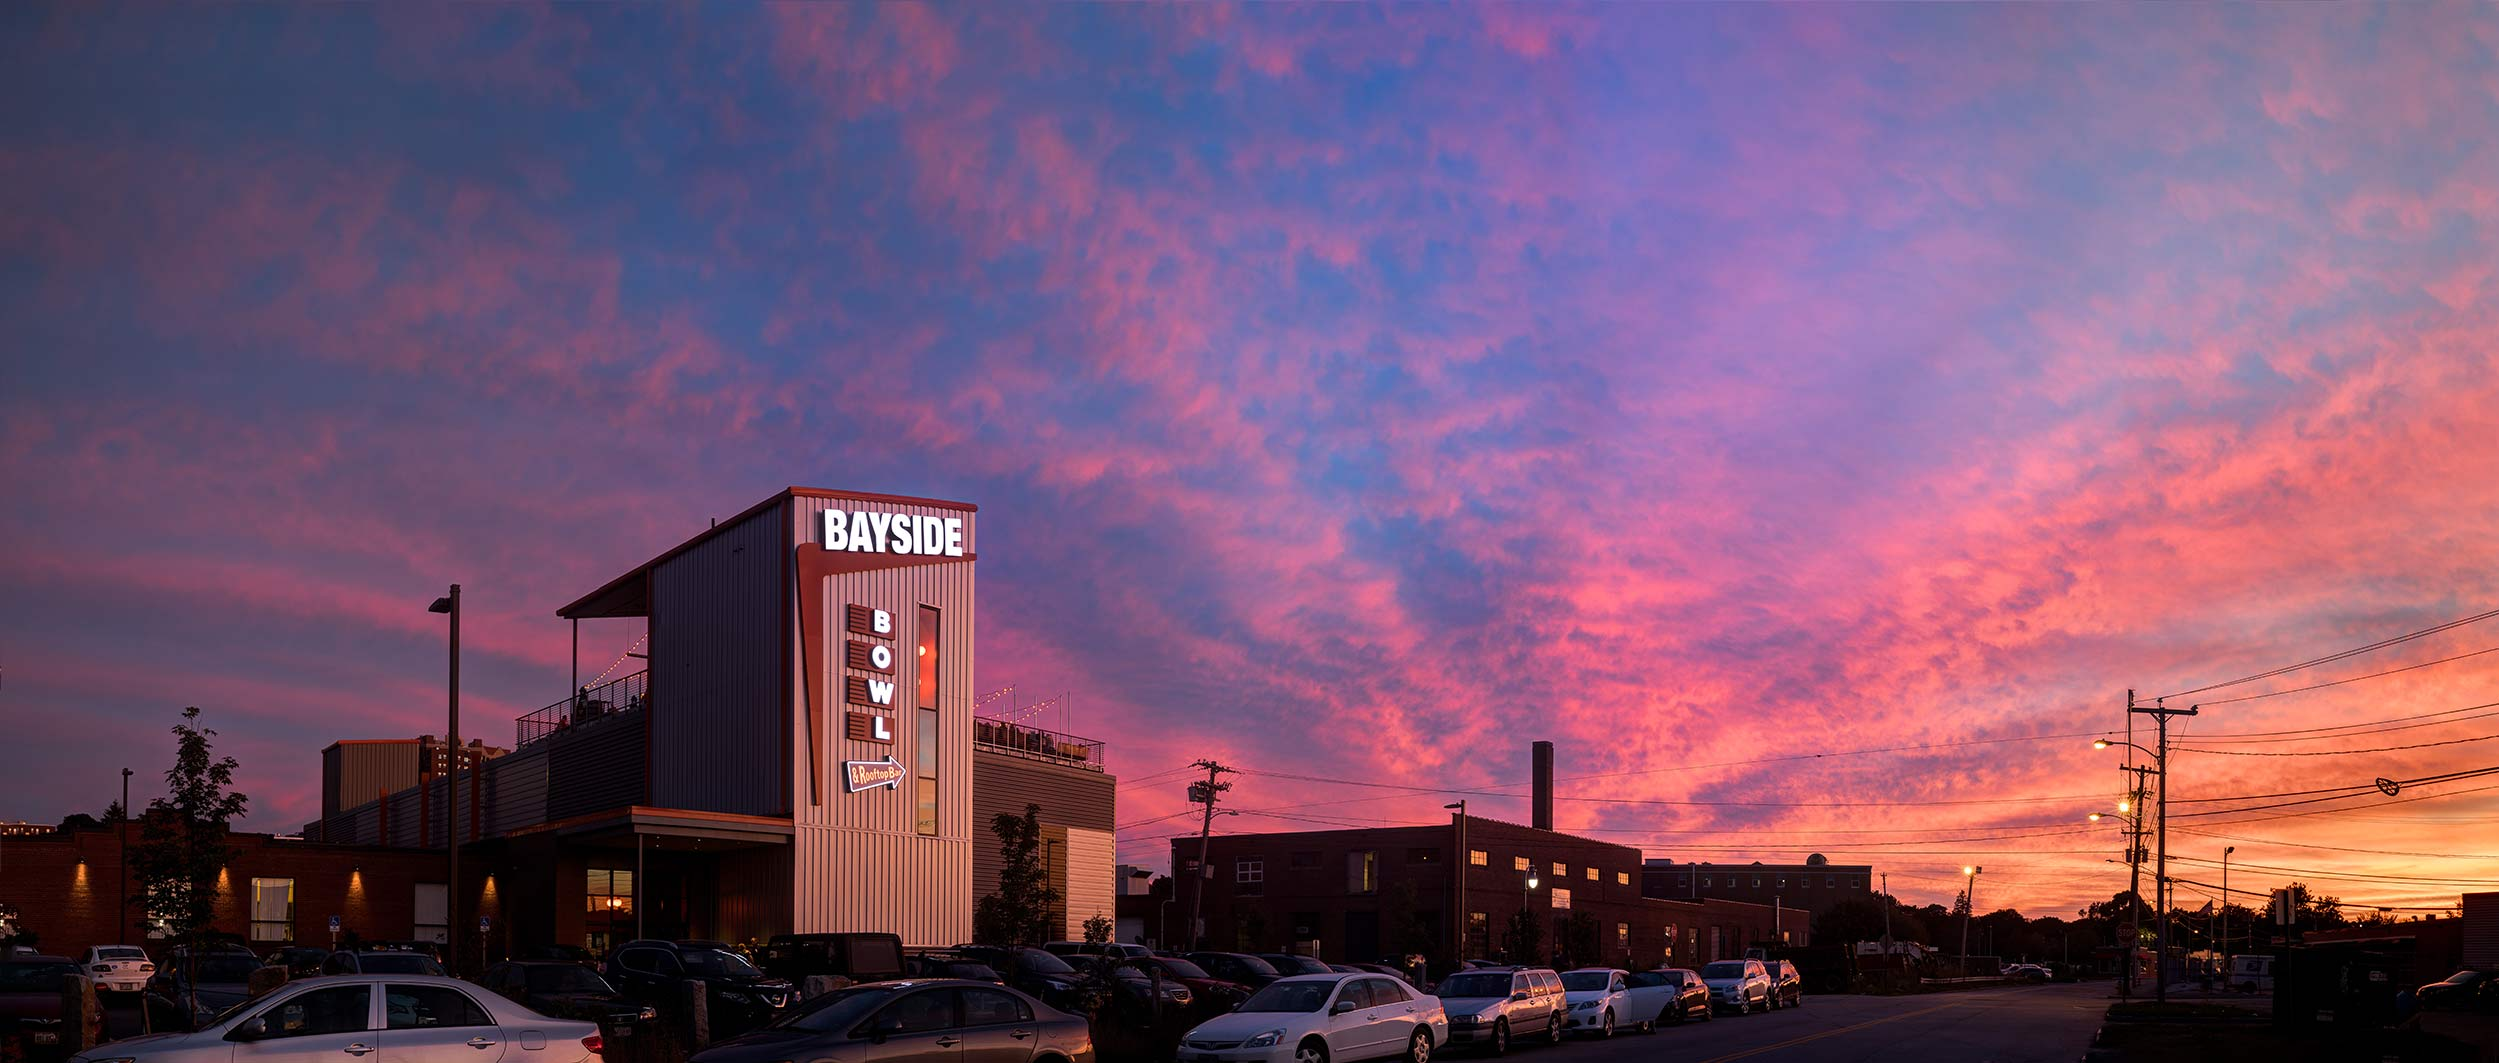 Beautiful sunset setting over the front of Bayside Bowl